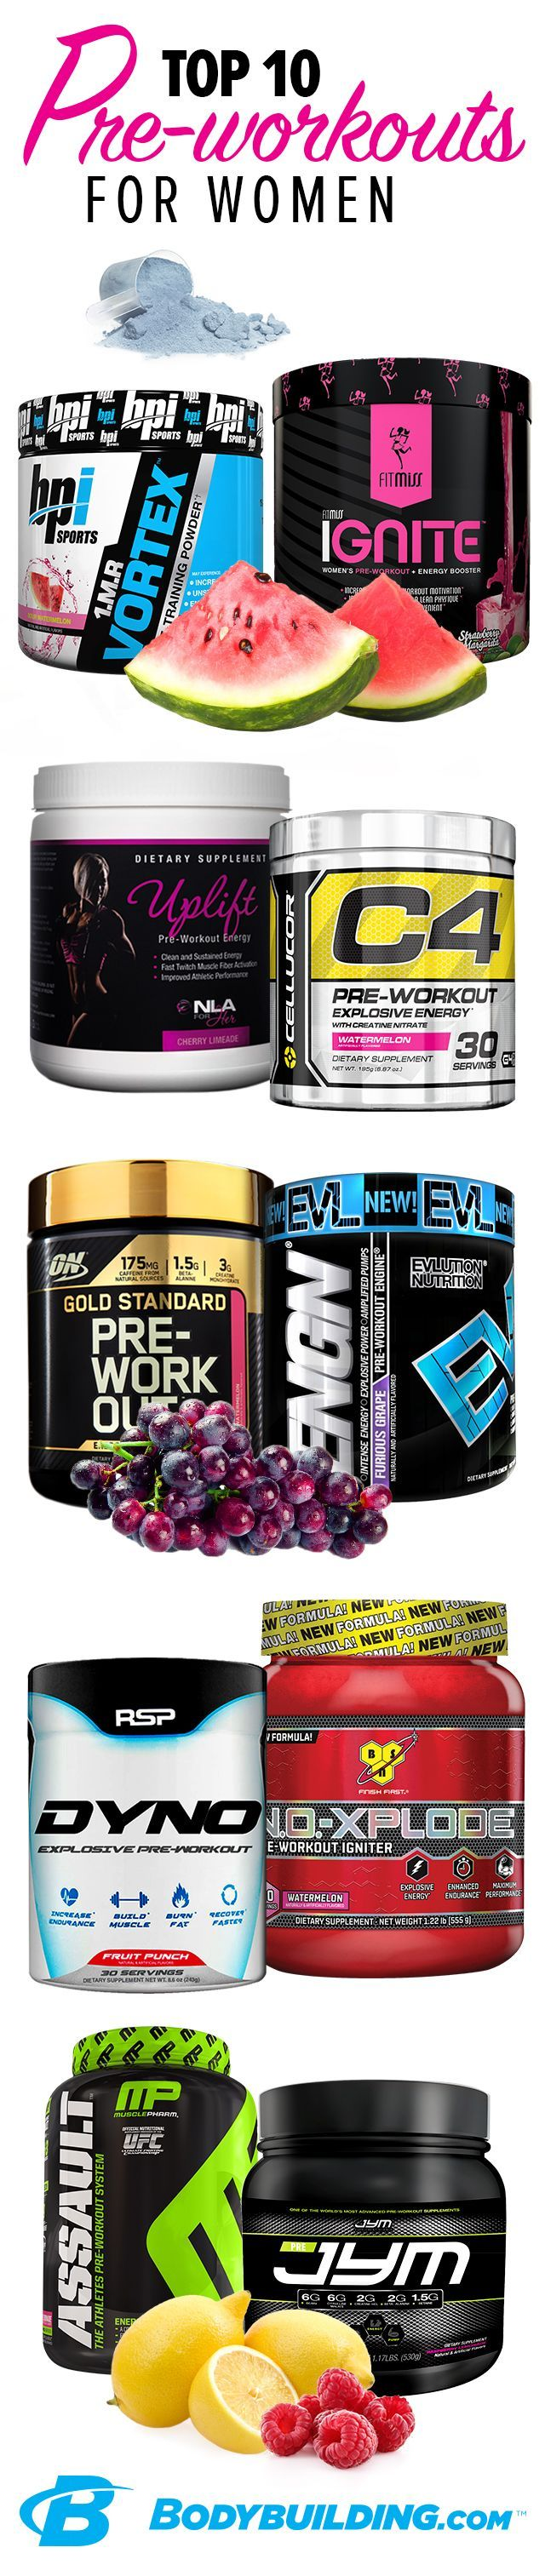 Top 10 Preworkouts for Women! Dont think you have the stamina to squeeze a session into your action-packed day? These pre-workouts have your back. Grab one on your way to the gym—they work fast to fight fatigue and focus your mind. http://Bodybuilding.com